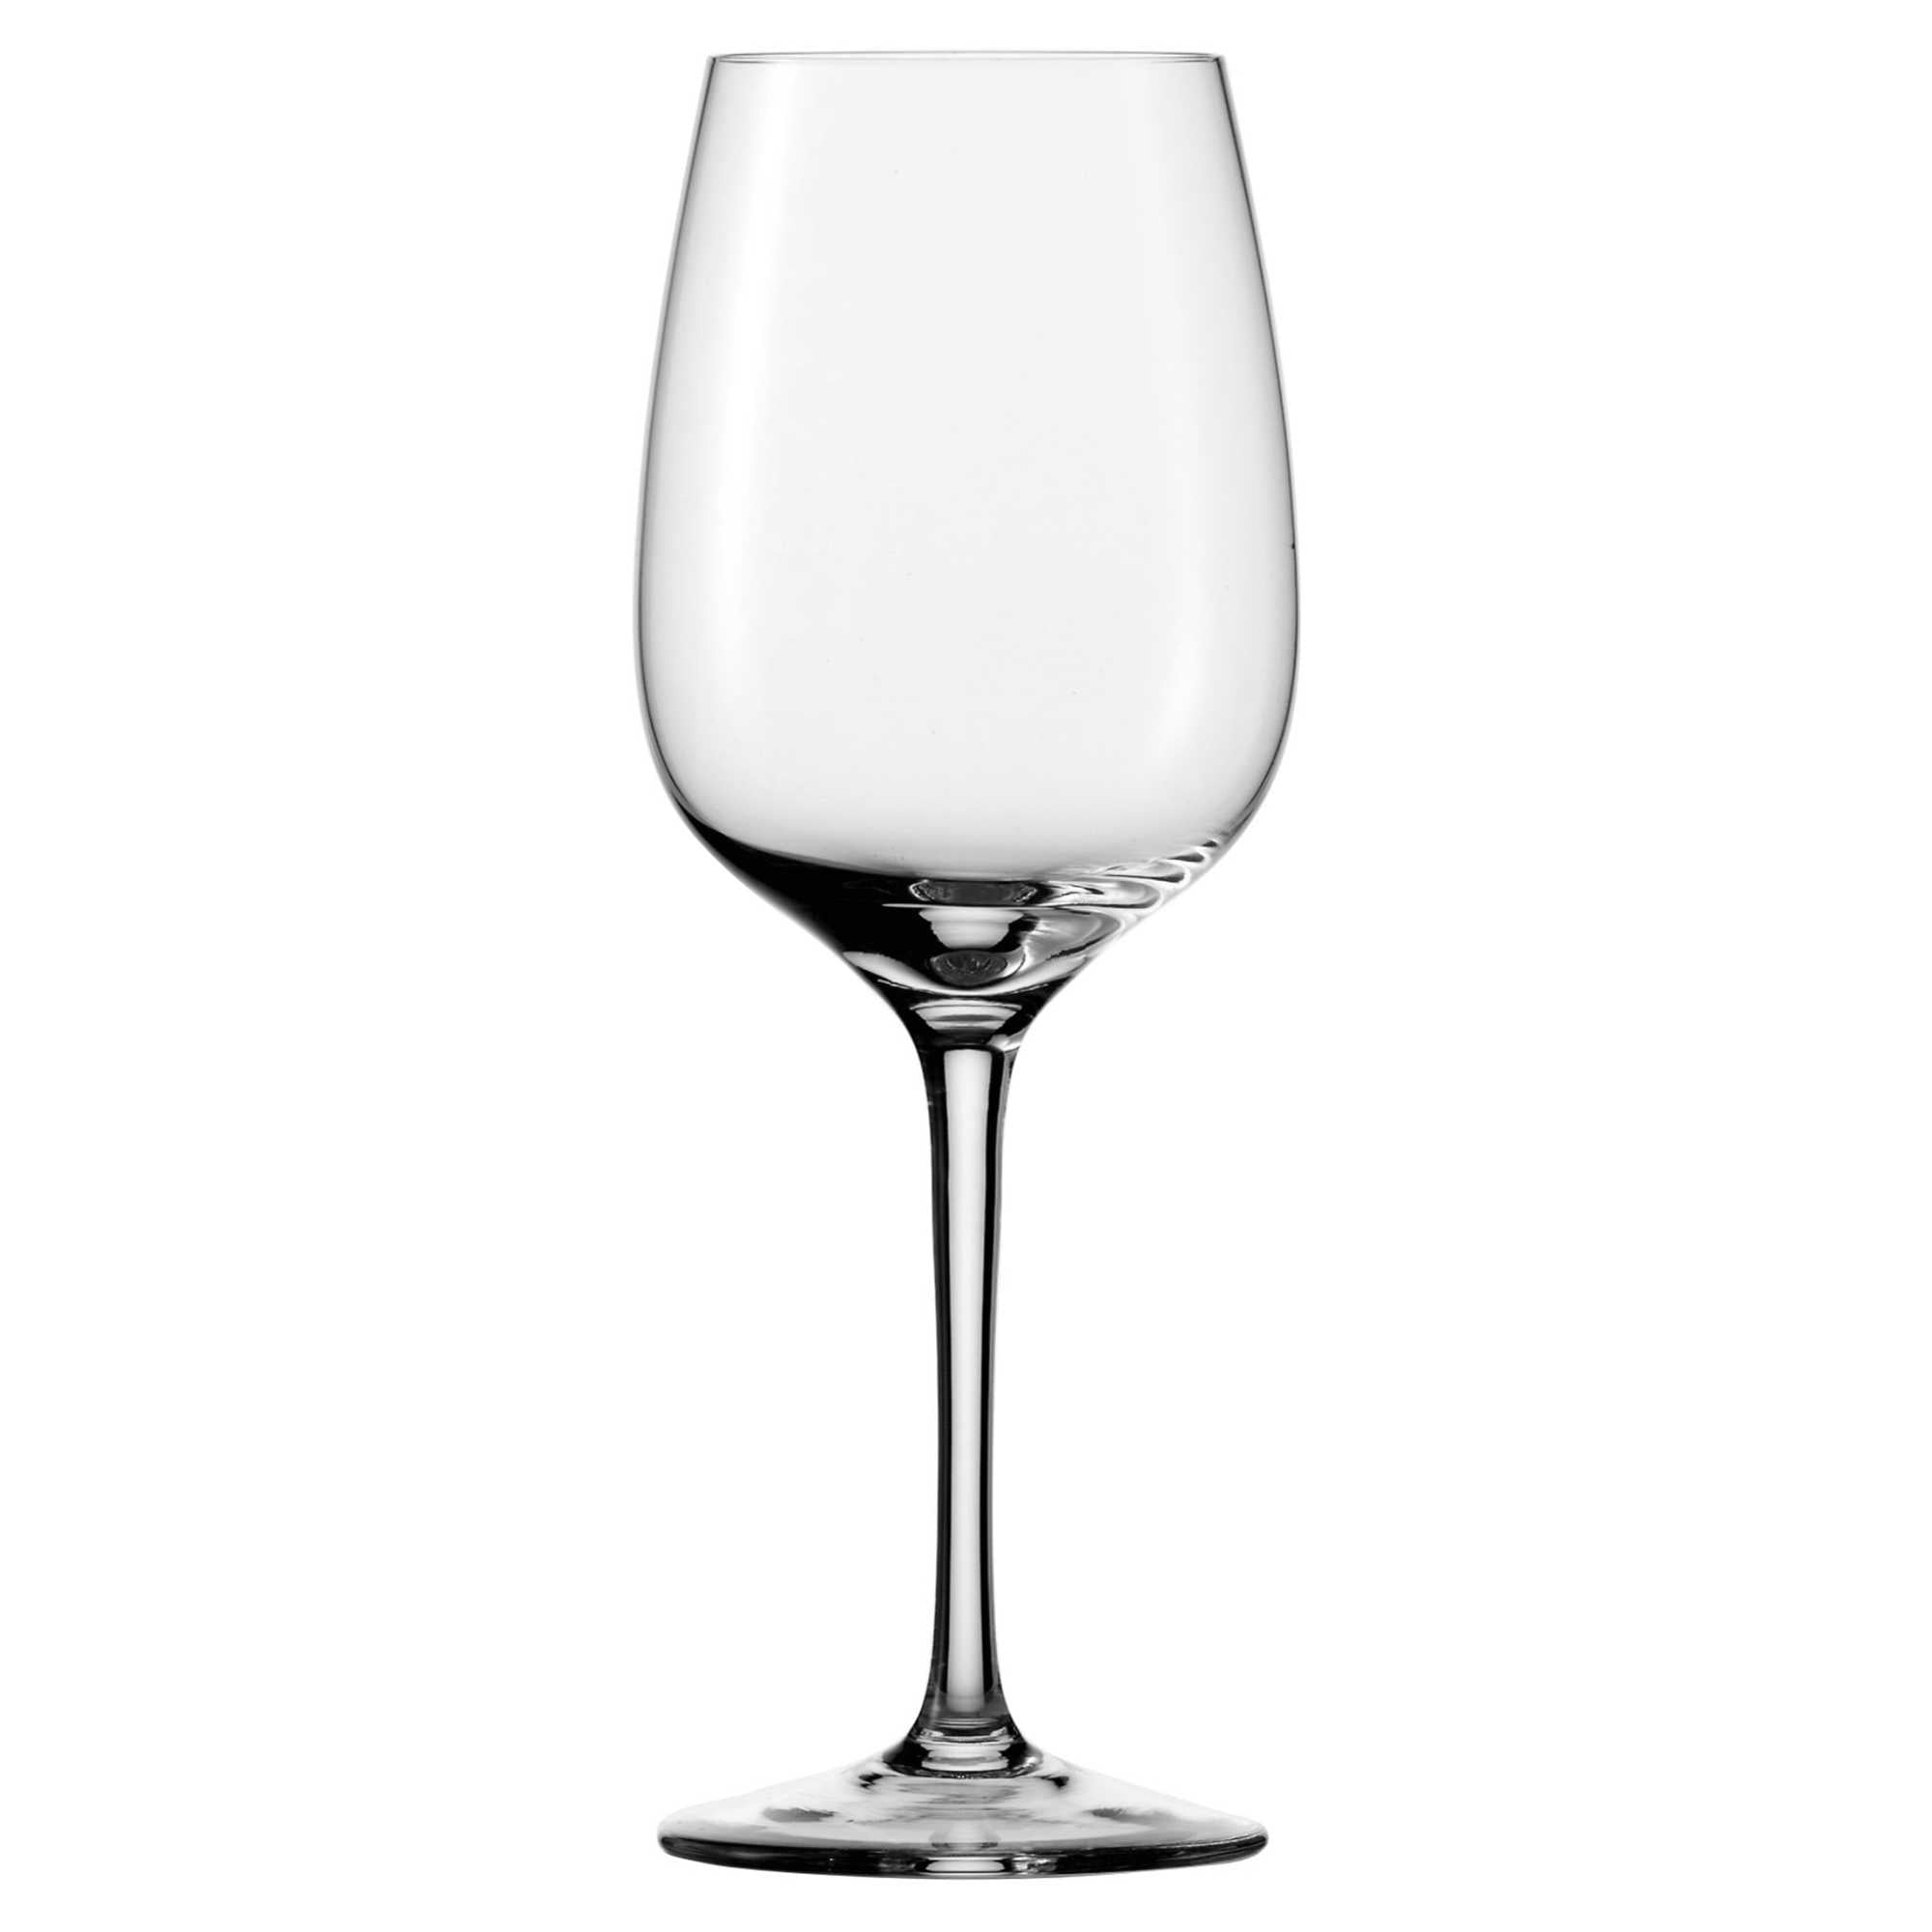 Eisch Superior Chardonnay Glass